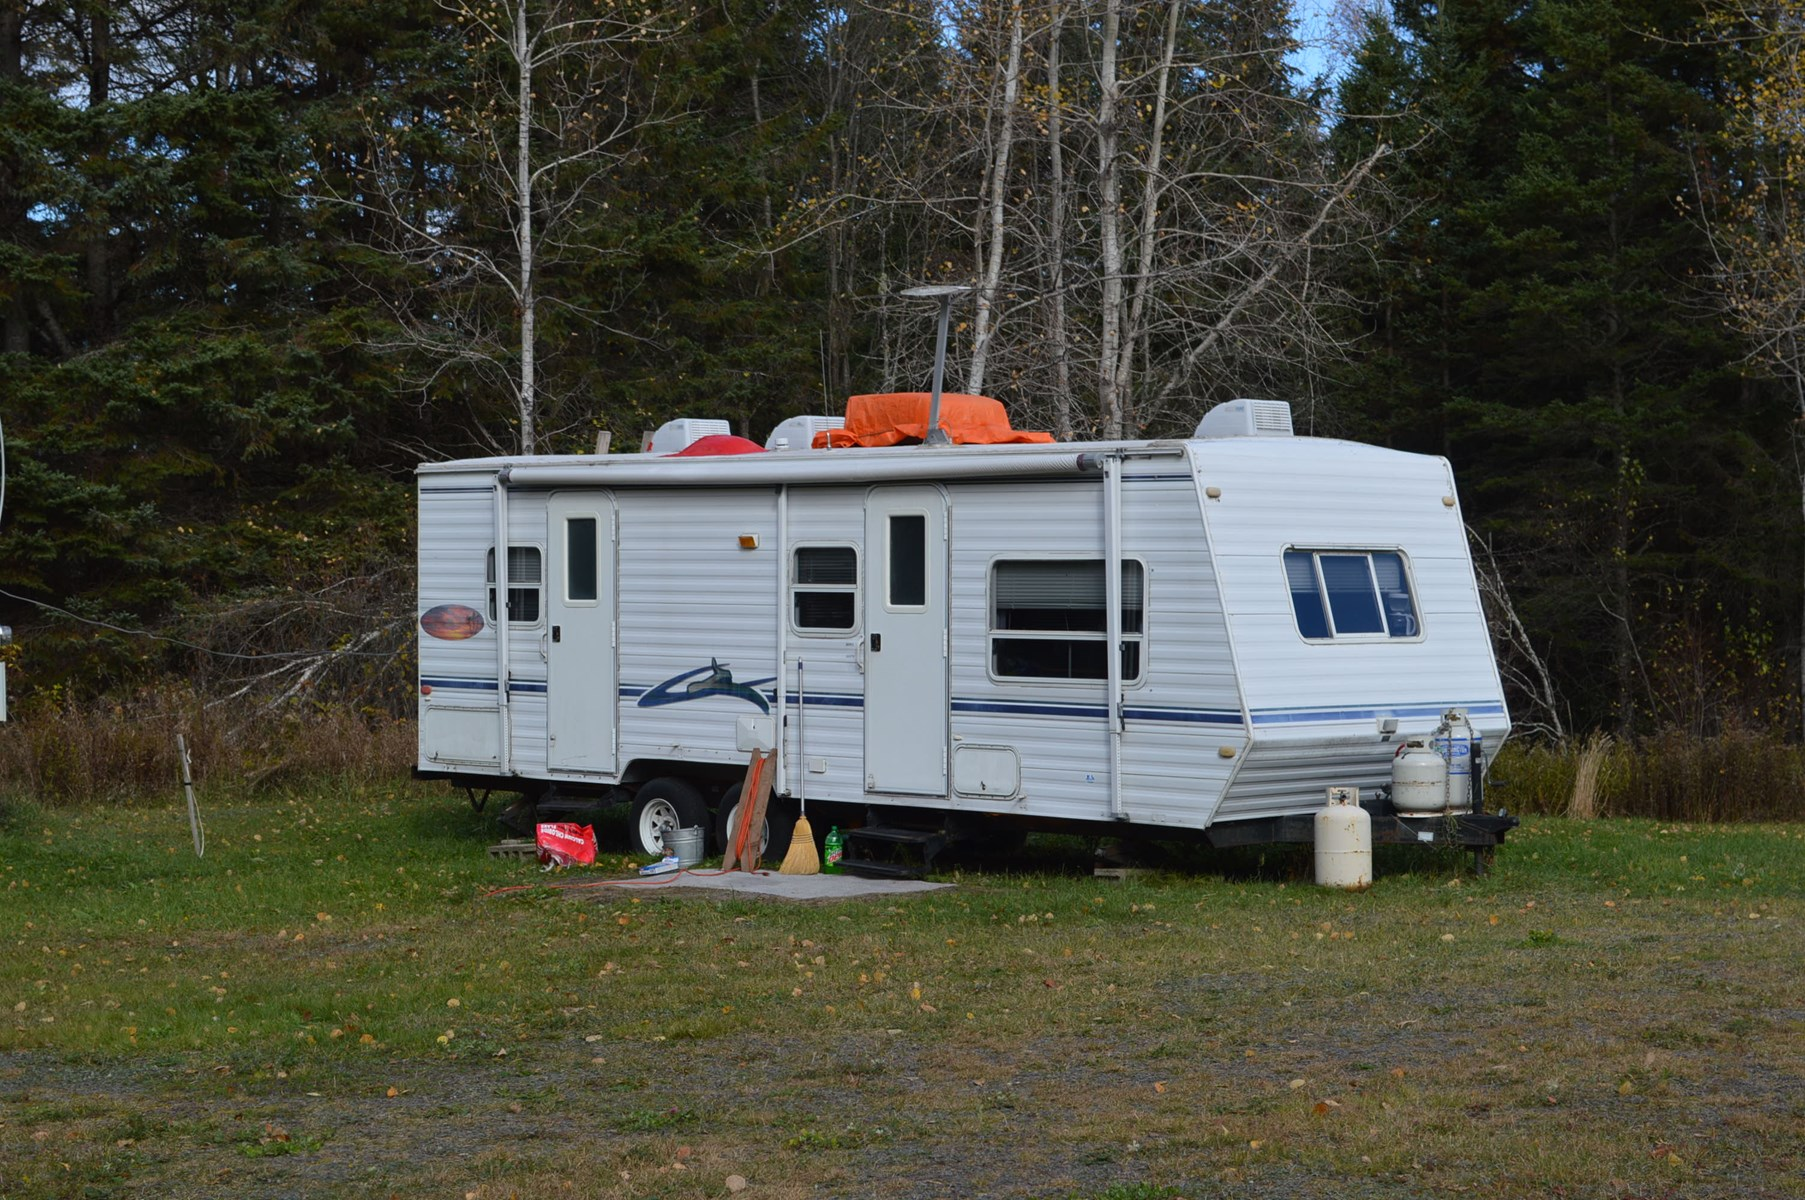 Land lot with camper for sale in Prentiss, Maine